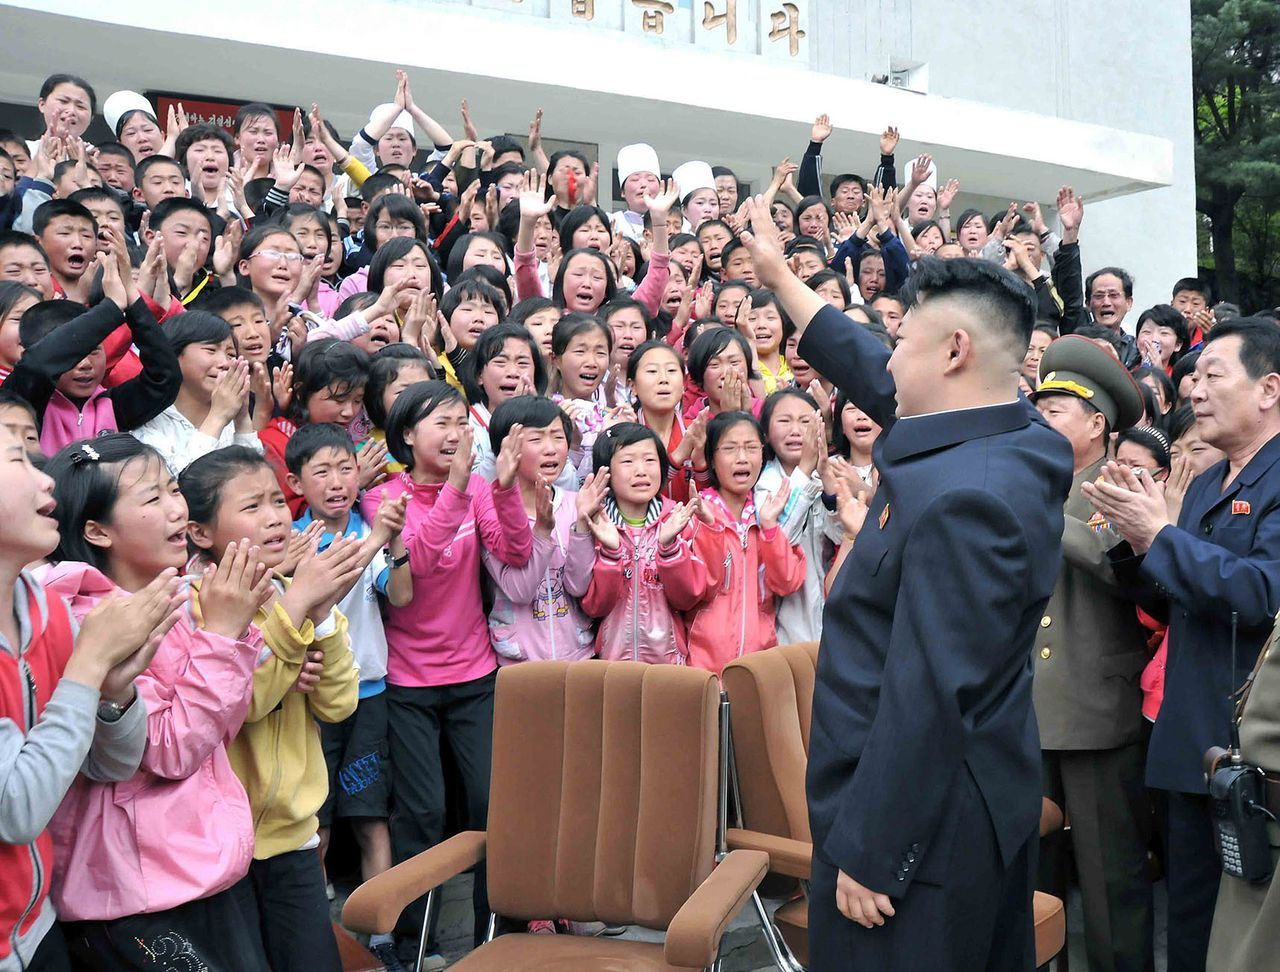 """This photo taken on May 19, 2013 and released by North Korea's official Korean Central News Agency (KCNA) on May 20, 2013 shows North Korean leader Kim Jong-Un (front R) waving to the children during a visit to the Pyongyang Myohyangsan Children's Camp, situated at the foot of Mt. Myohyang (Myohyang-san) in North Phyongan Province. Meanwhile, South Korea on May 20 predicted further missile tests by North Korea which fired four short-range missiles into the Sea of Japan at the weekend, drawing criticism from Seoul and UN chief Ban Ki-moon. AFP PHOTO / KCNA via KNS THIS PICTURE WAS MADE AVAILABLE BY A THIRD PARTY. AFP CAN NOT INDEPENDENTLY VERIFY THE AUTHENTICITY, LOCATION, DATE, AND CONTENT OF THIS IMAGE. THIS PHOTO IS DISTRIBUTED EXACTLY AS RECEIVED BY AFP. -----EDITORS NOTE----- RESTRICTED TO EDITORIAL USE - MANDATORY CREDIT """"AFP PHOTO / KCNA via KNS"""" - NO MARKETING NO ADVERTISING CAMPAIGNS - DISTRIBUTED AS A SERVICE TO CLIENTS"""